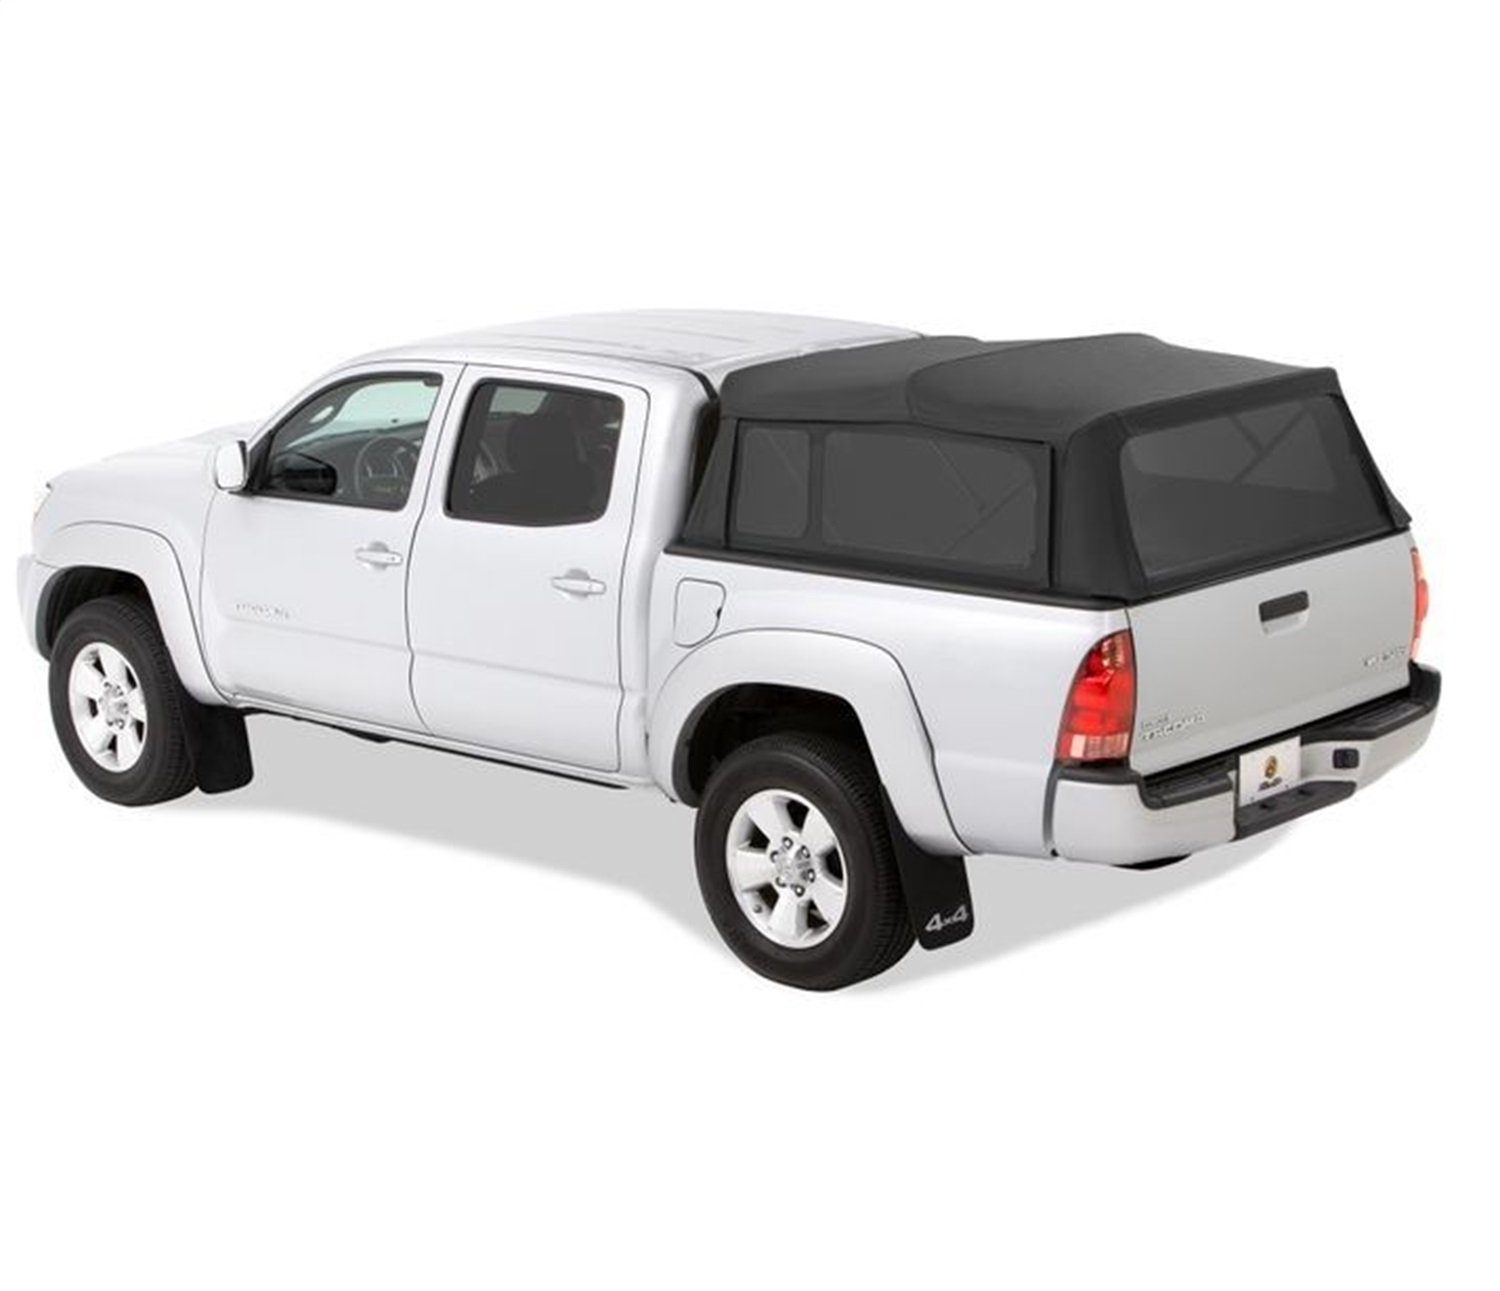 Bestop 76308 35 Black Diamond Supertop For Truck Bed Cover 5 0 Bed For 2005 2012 Toyota Tacoma Double Cab Tonneau Covers Amazon Canada